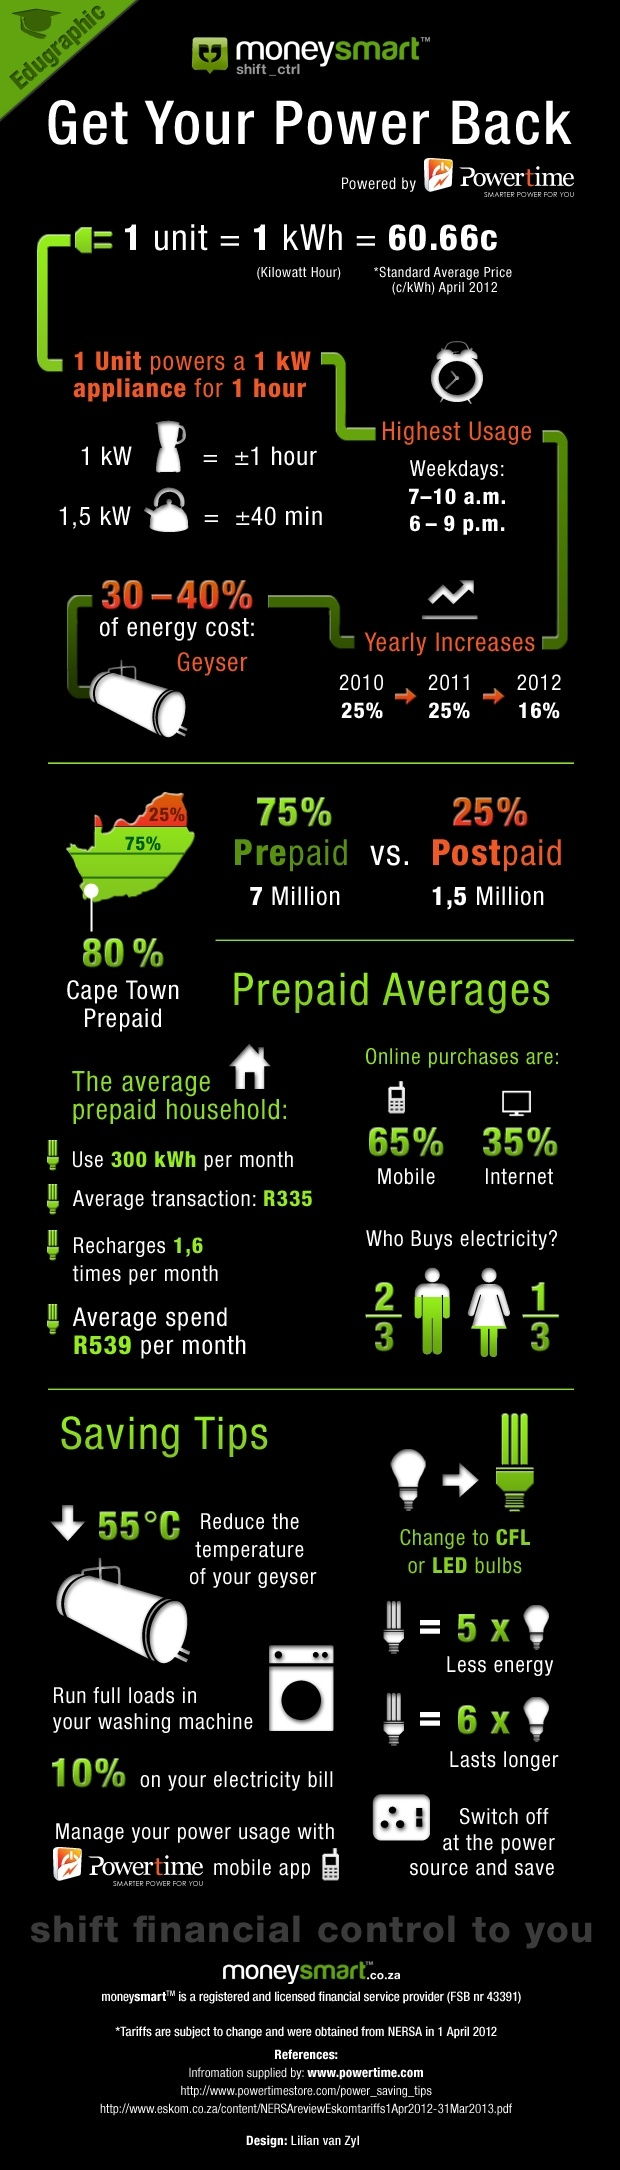 Get your power back with our power & money saving infographic